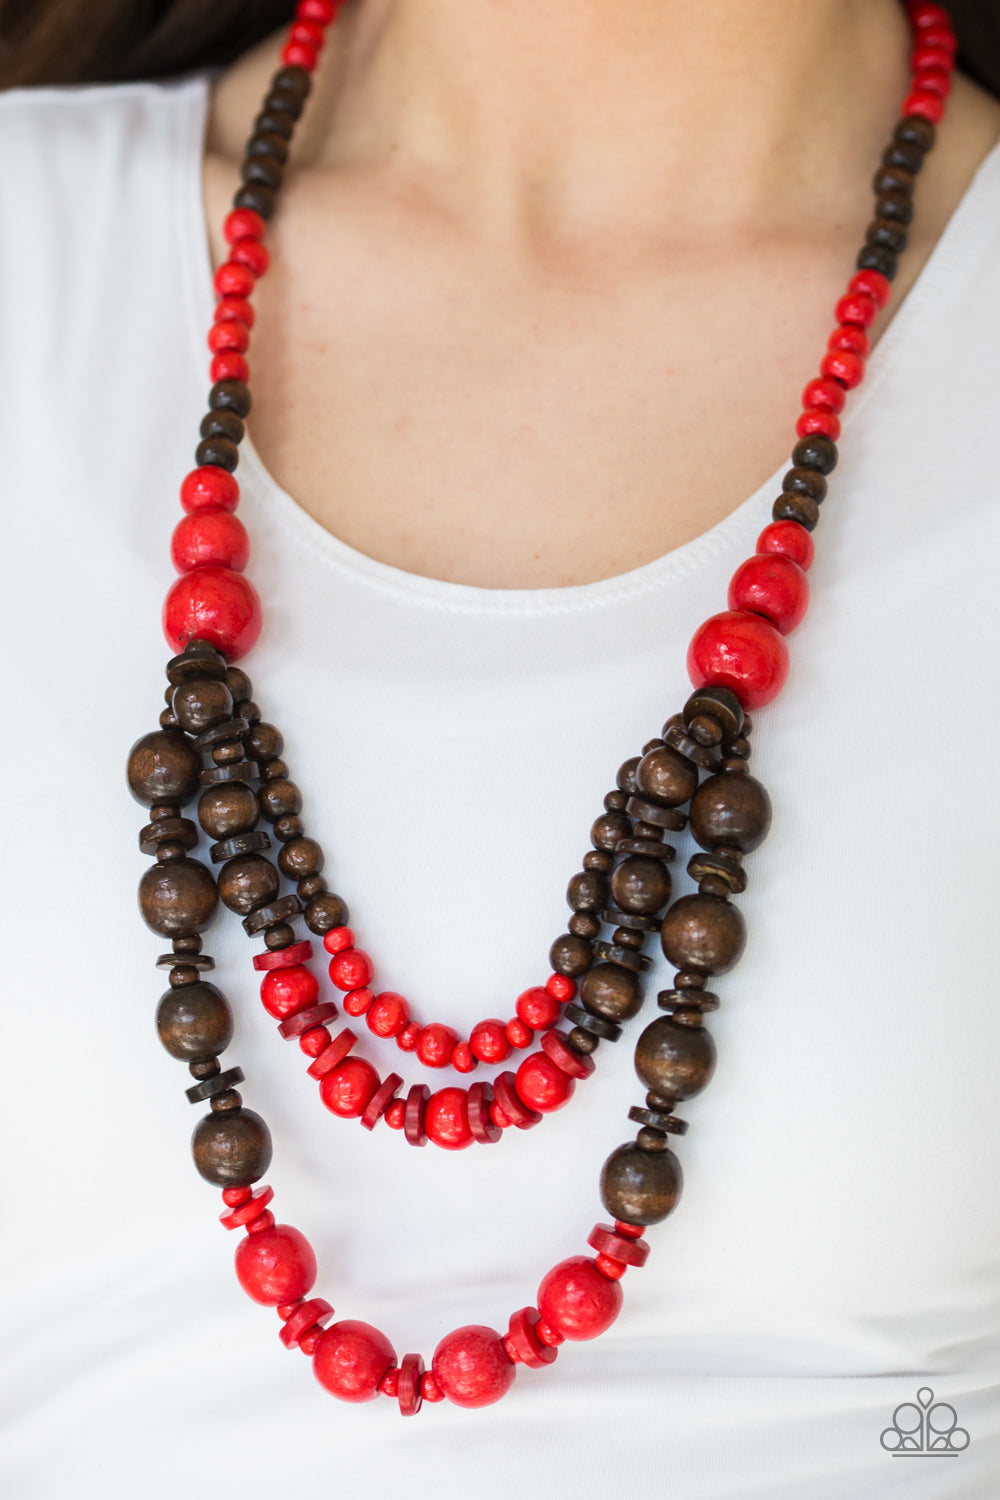 Paparazzi - Rio Rainbows - Red Wood Necklace Set - Classy Jewels by Linda